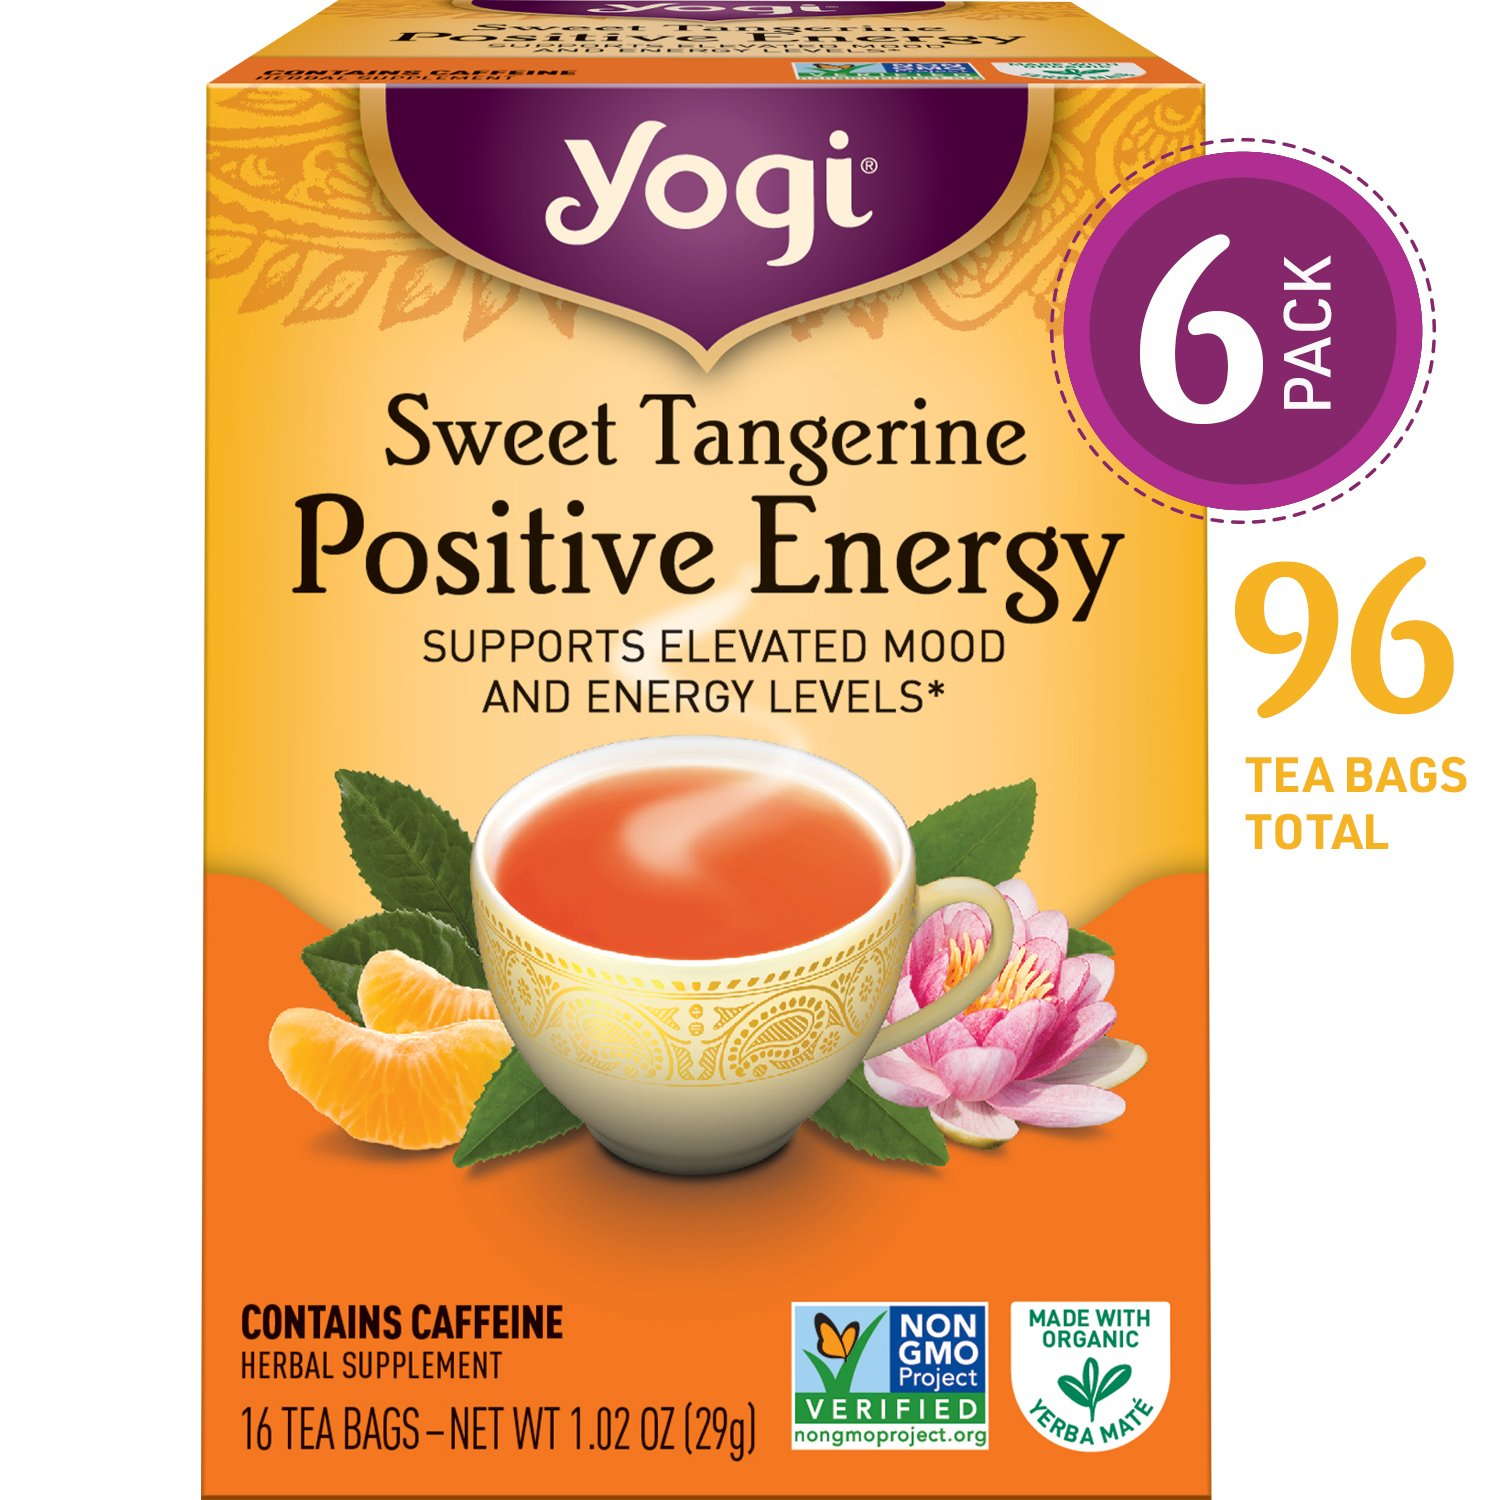 Yogi Tea - Sweet Tangerine Positive Energy - Supports Elevated Mood and Energy Levels - 6 Pack, 96 Tea Bags Total by Yogi